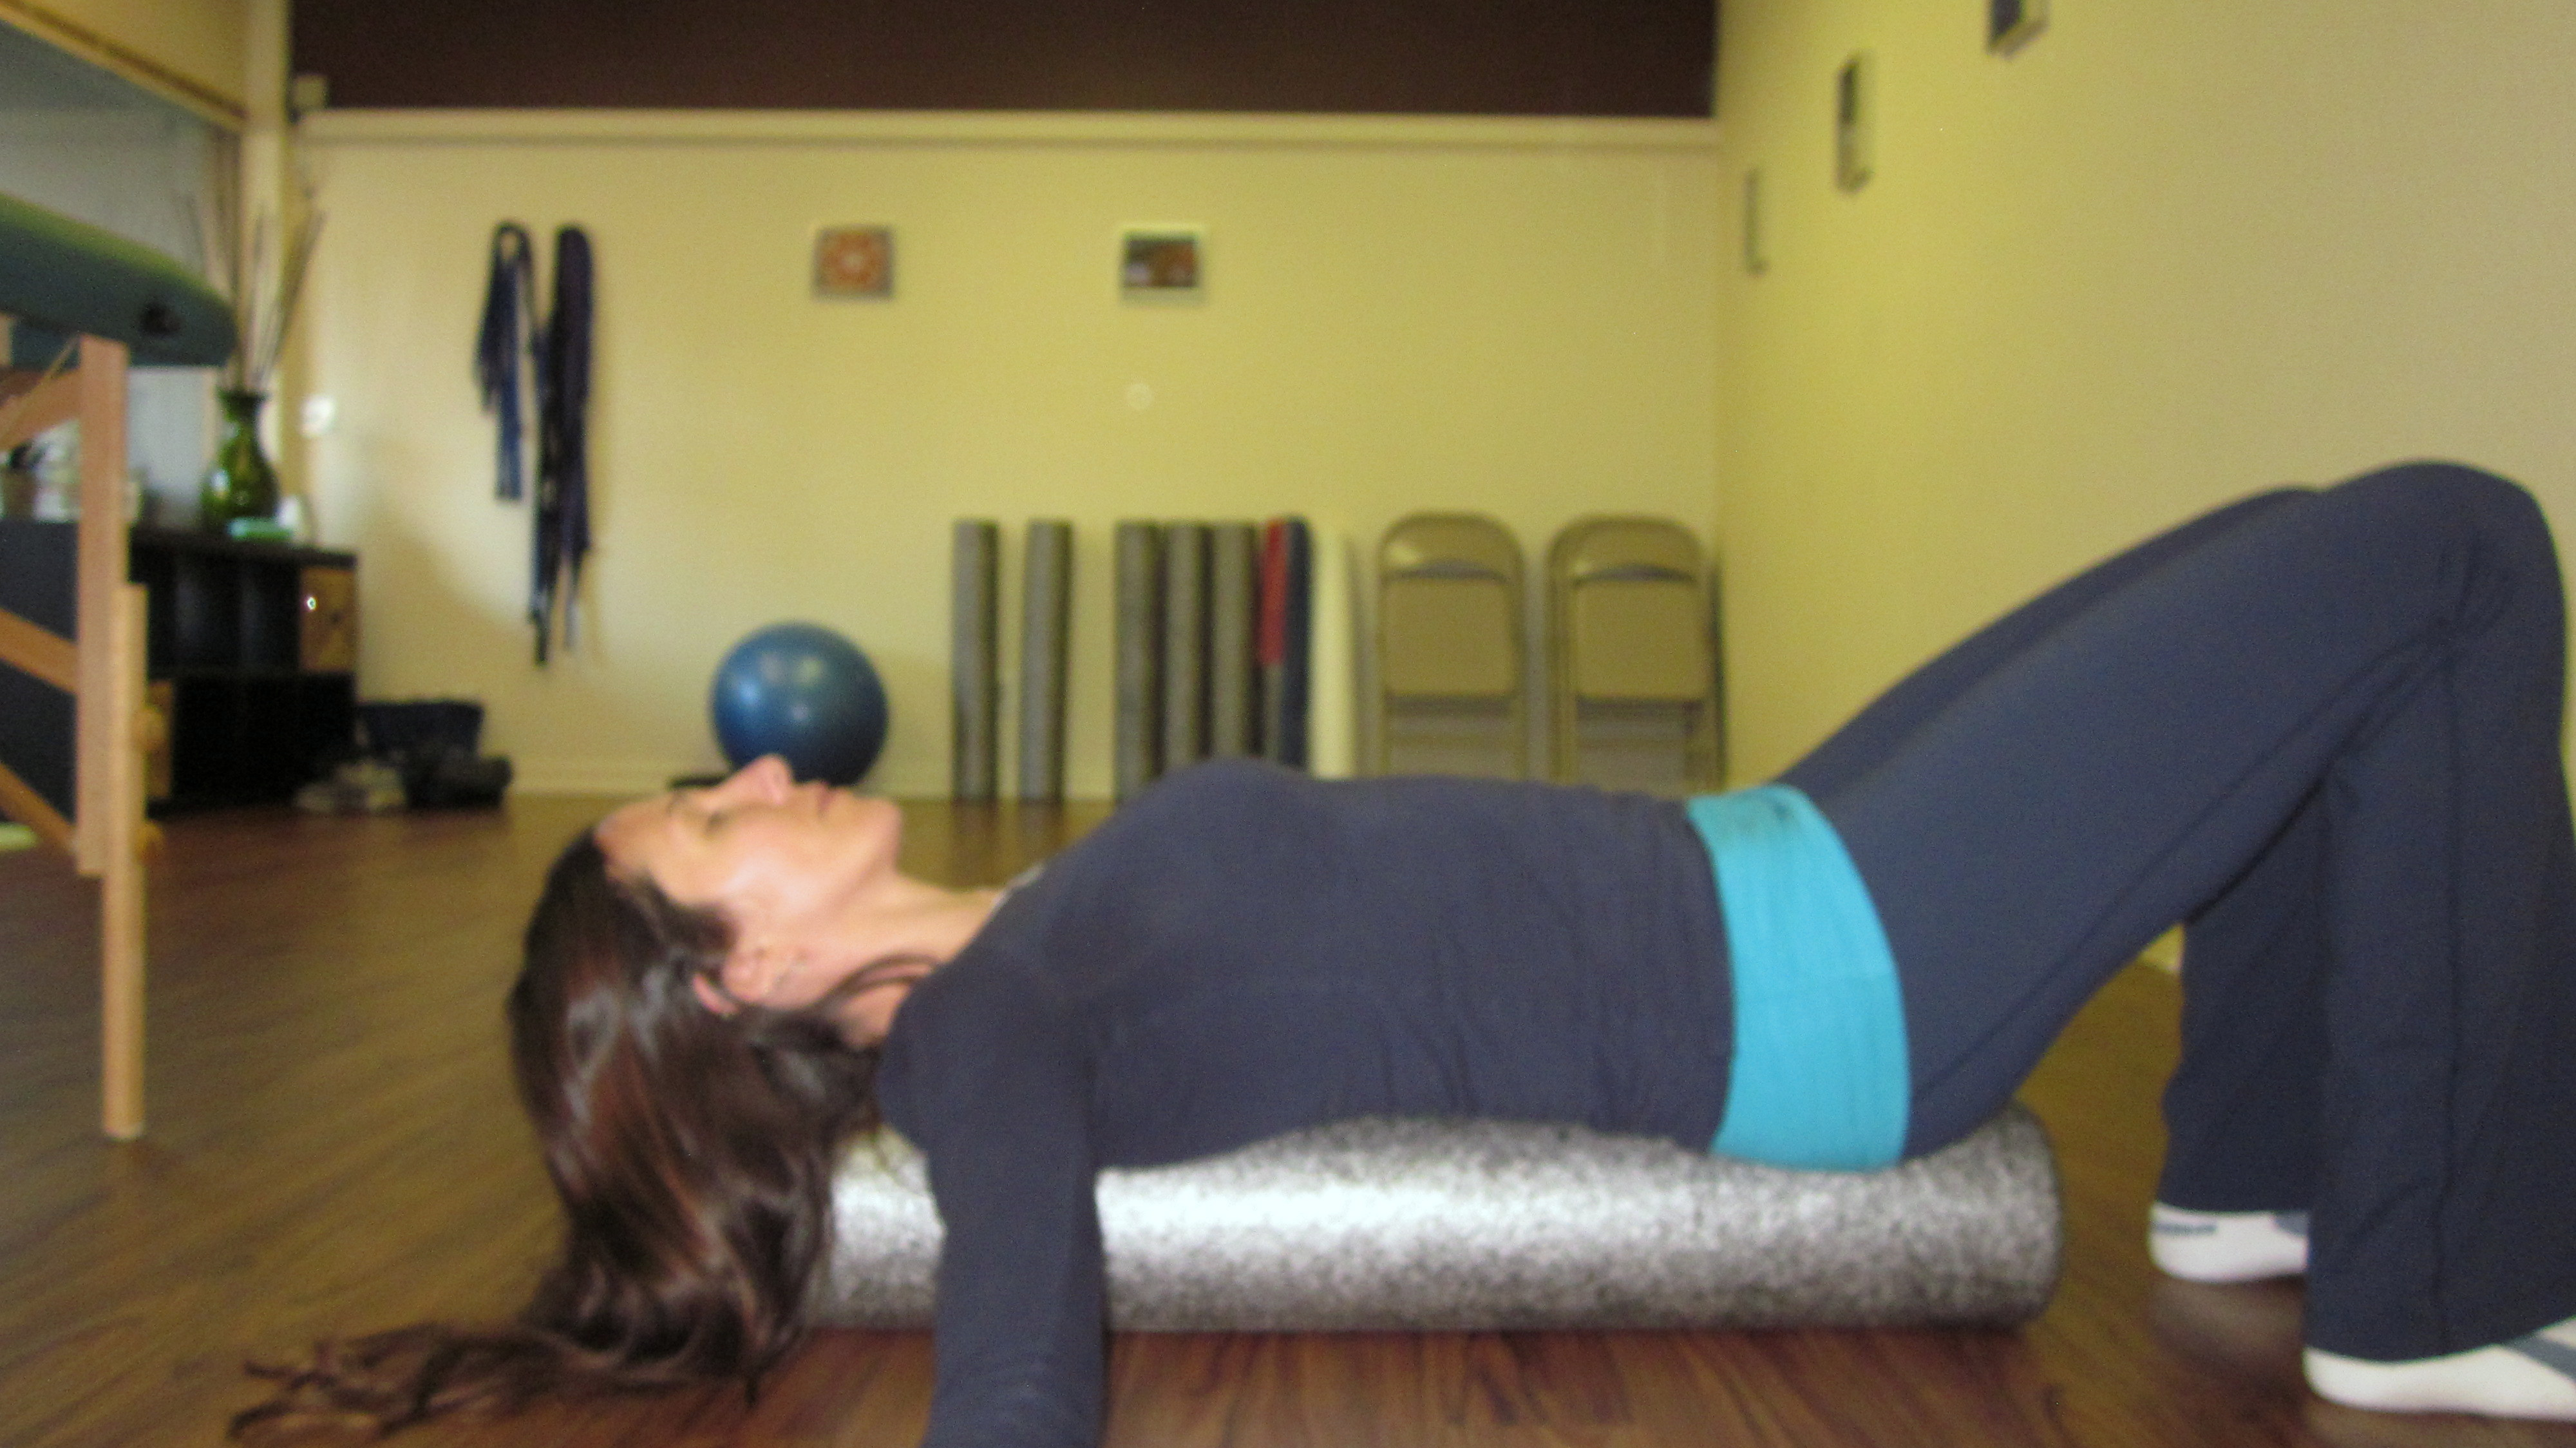 Buy foam roll physical therapy - Letter To The Editor Of Physical Therapy Journal Stress Management As An Adjunct To Physical Therapy For Chronic Neck Pain Foam Roller Bliss